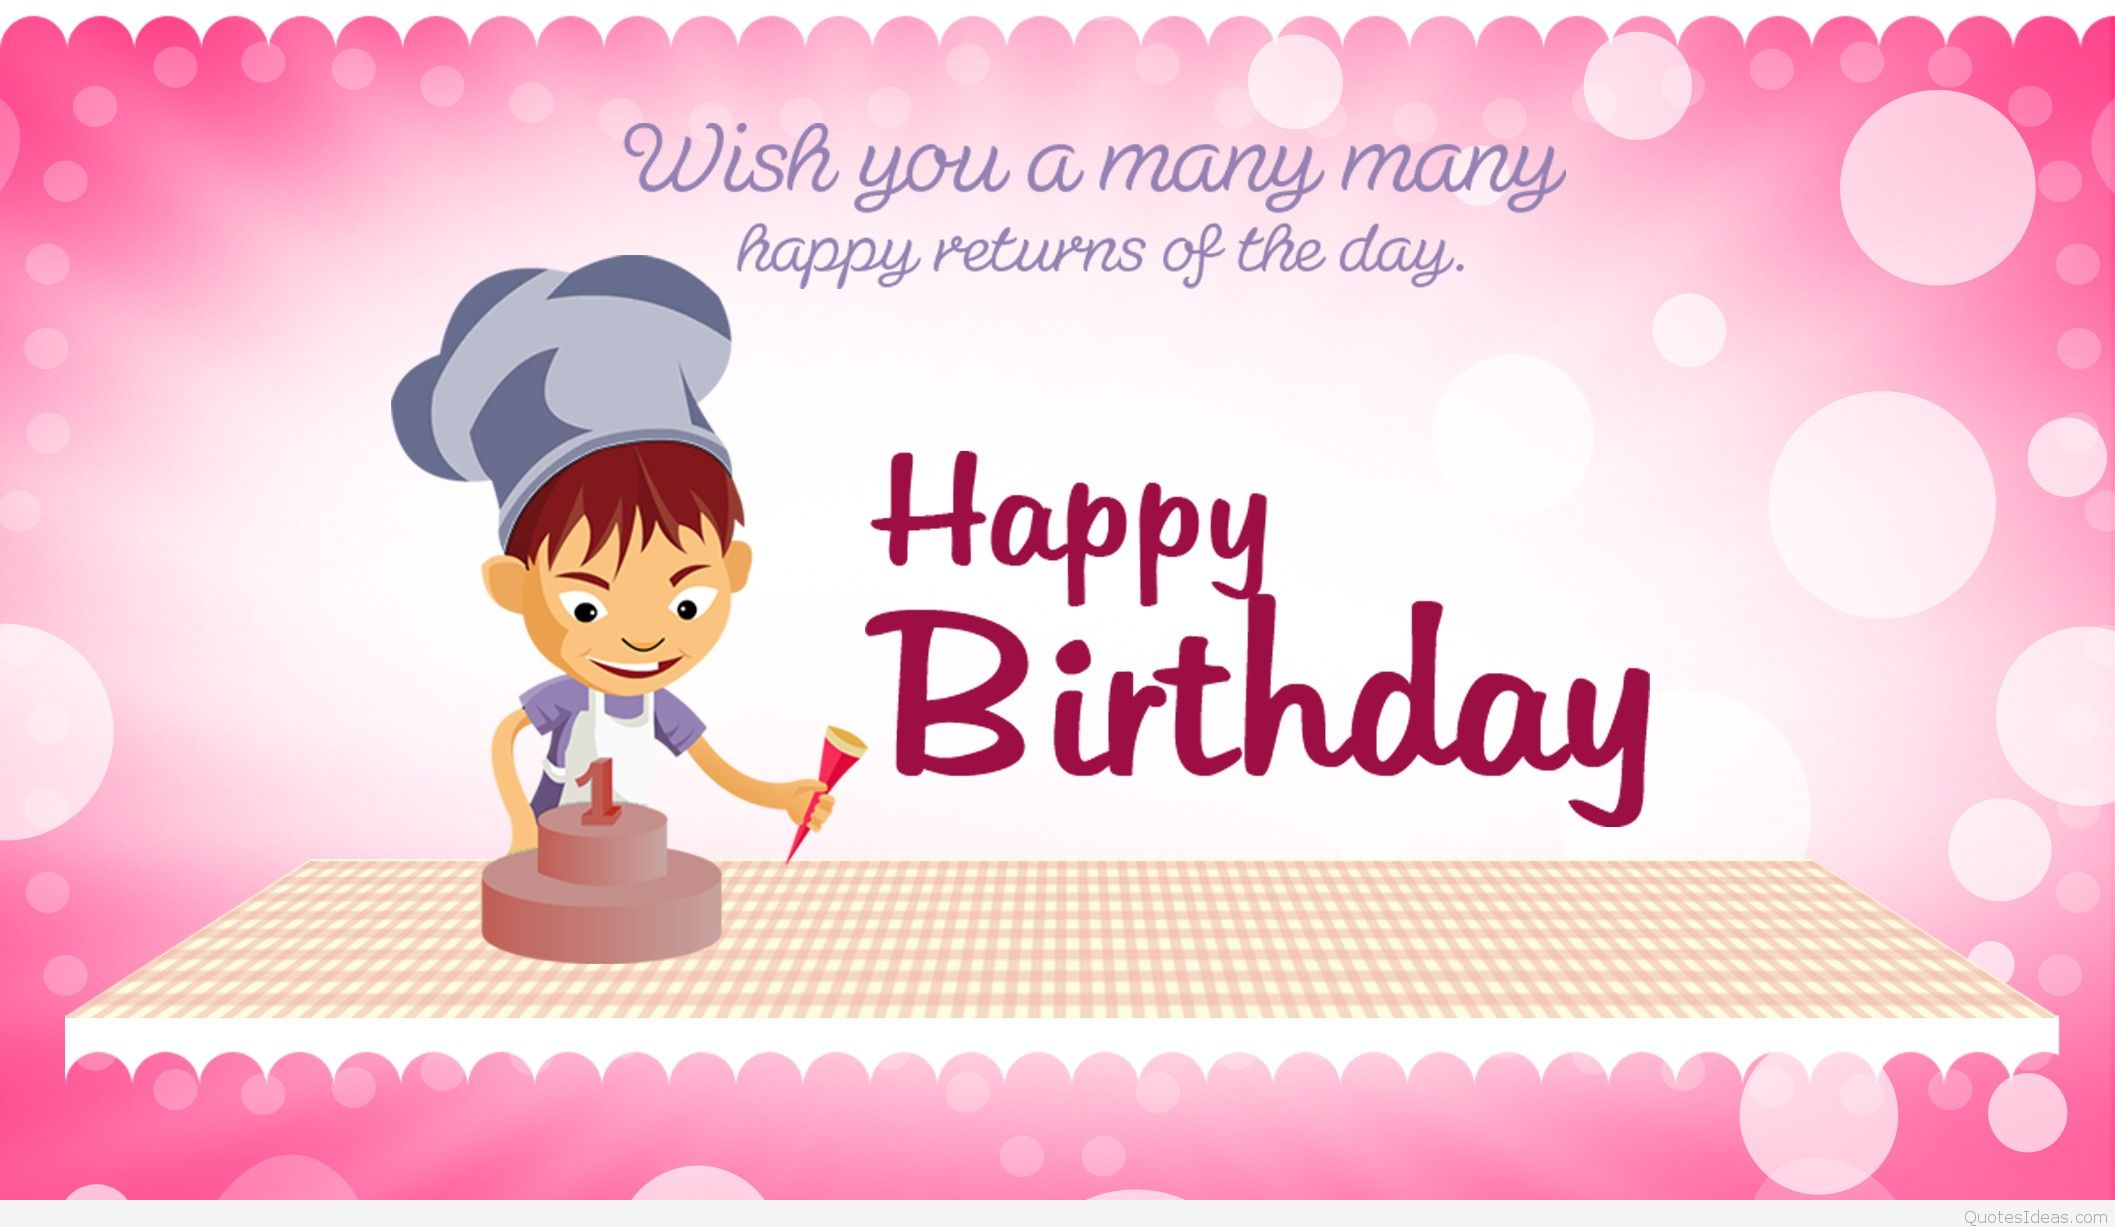 happy birthday message for kids ; birthday-invitations-card-birthday-wish-for-a-friend-images-50th-wishes-gt-happy-inspirational-message-in-hindi-wishe-you-very-download-kids-cards-cool-birthday-wishes-to-a-friend